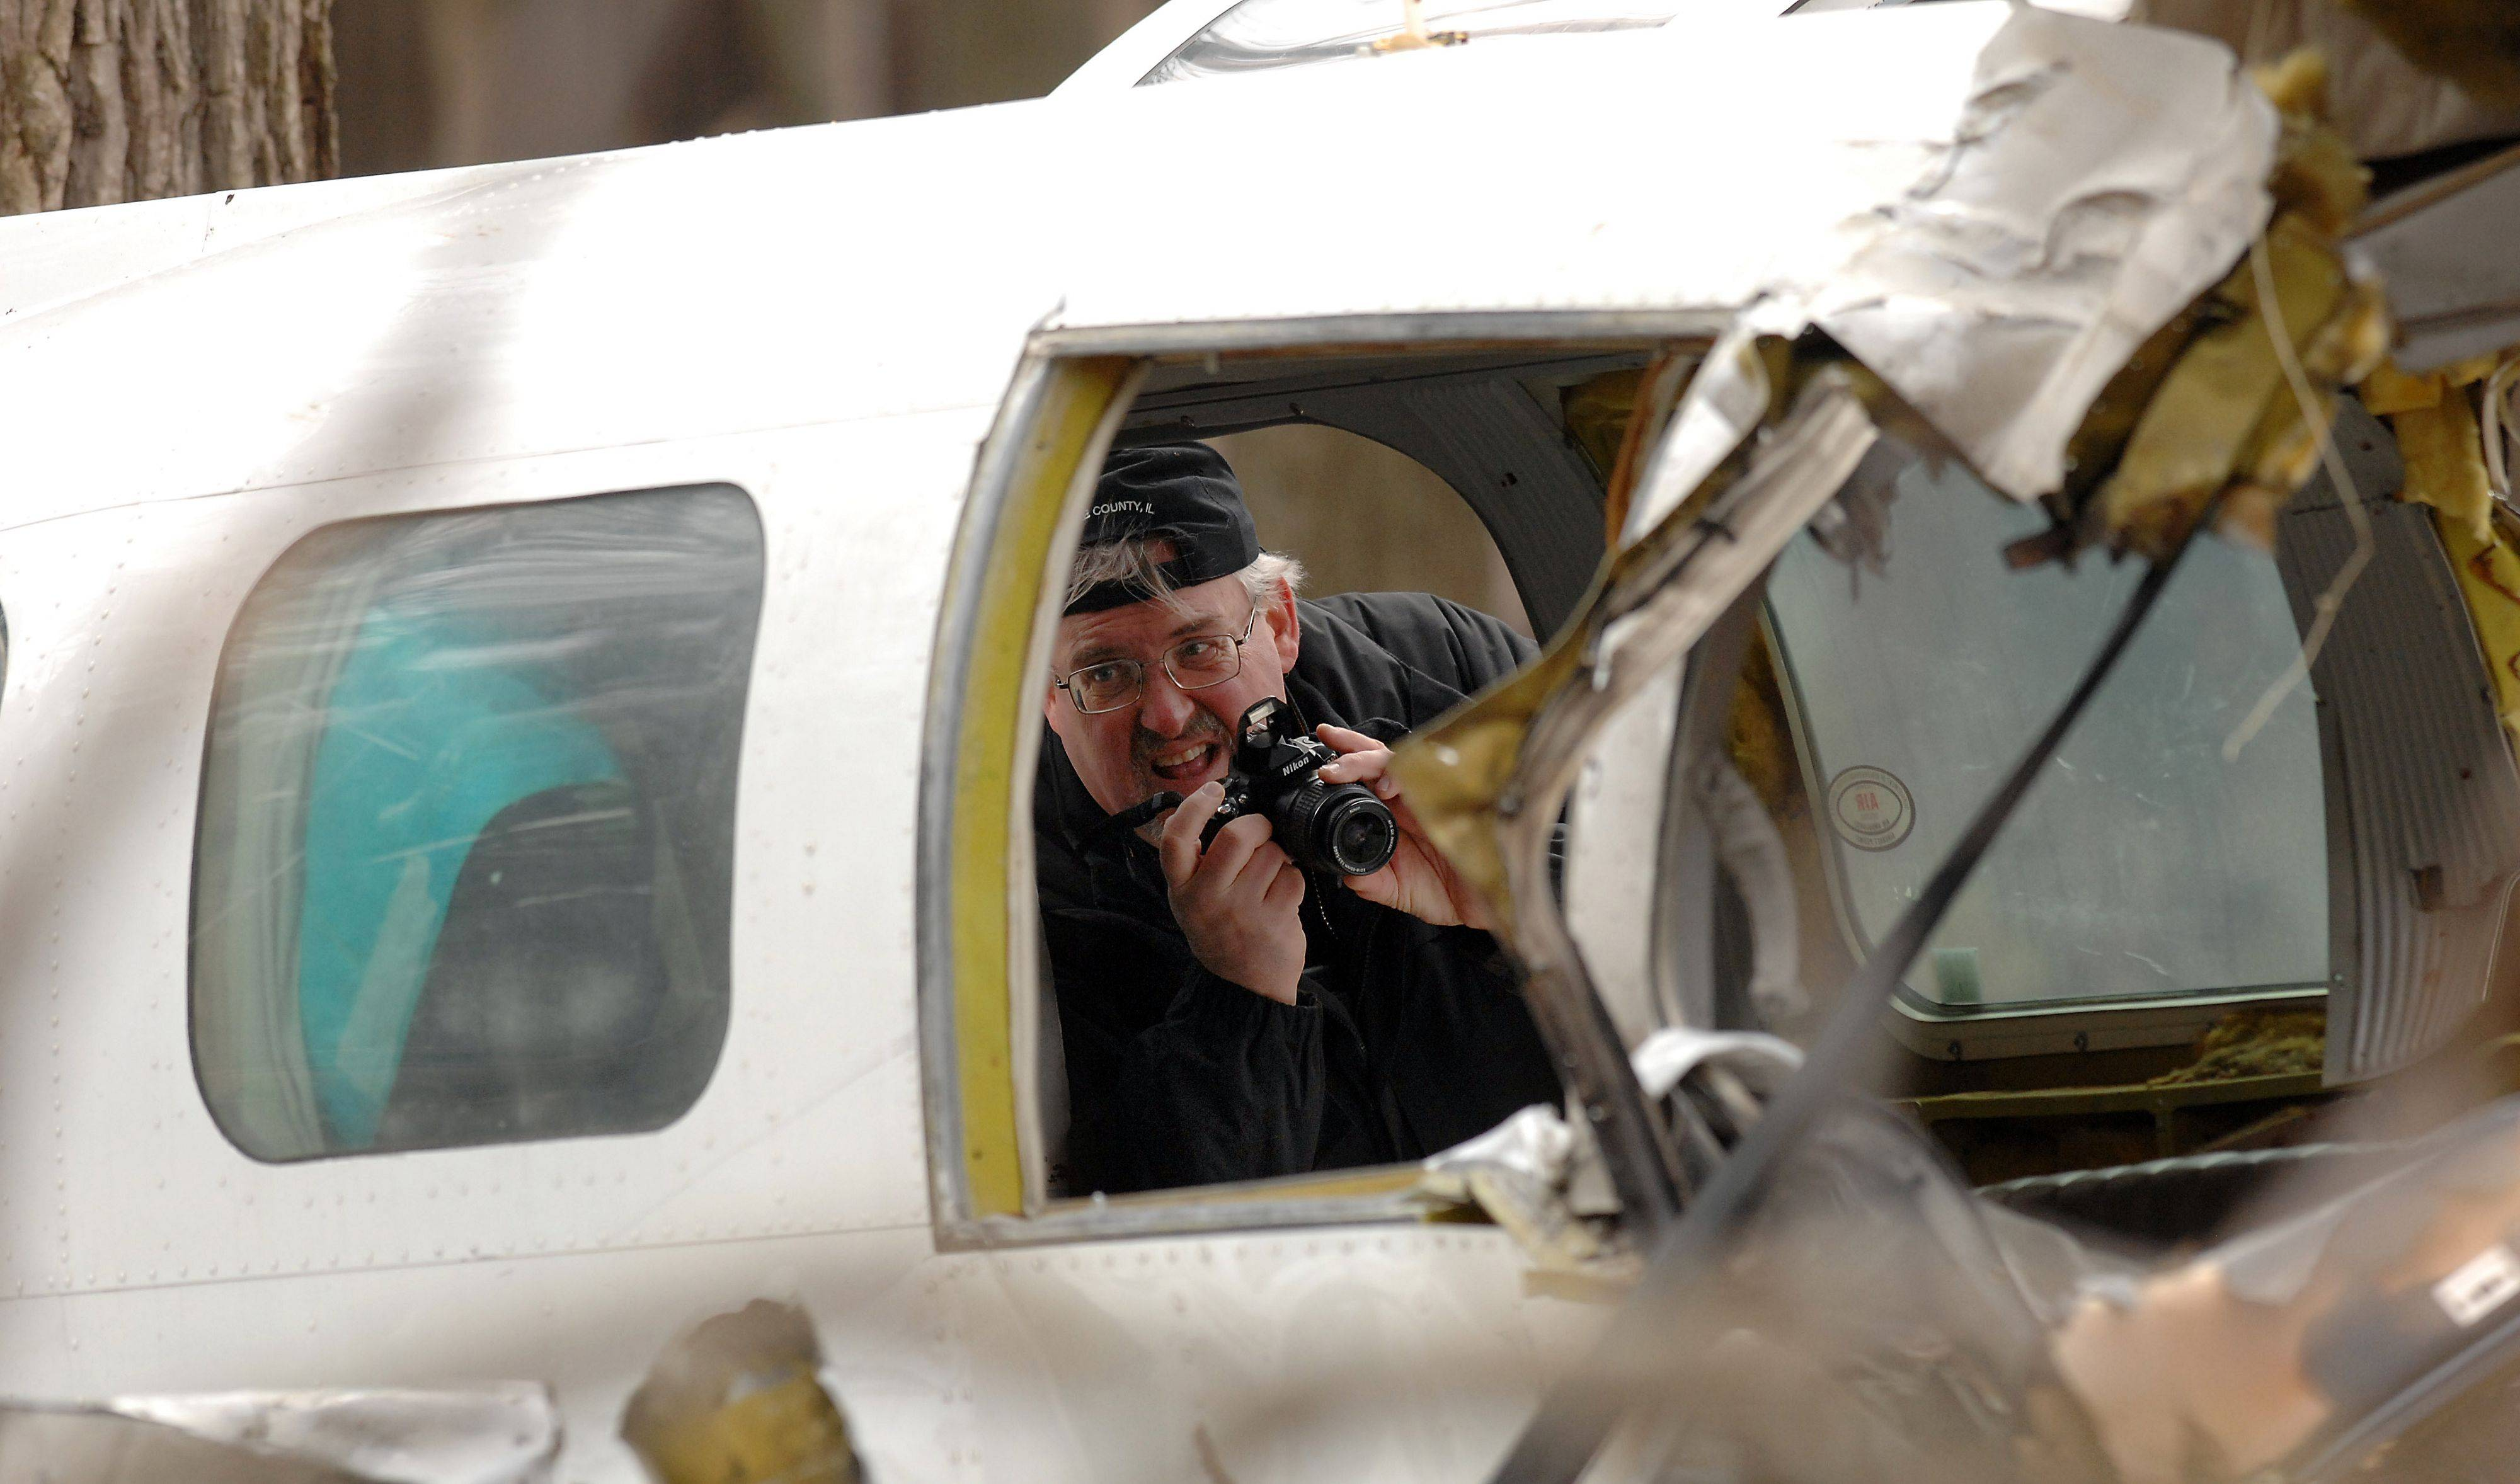 A FAA photographer takes pictures inside the wreckage of the plane that crashed in Riverwoods Monday night.